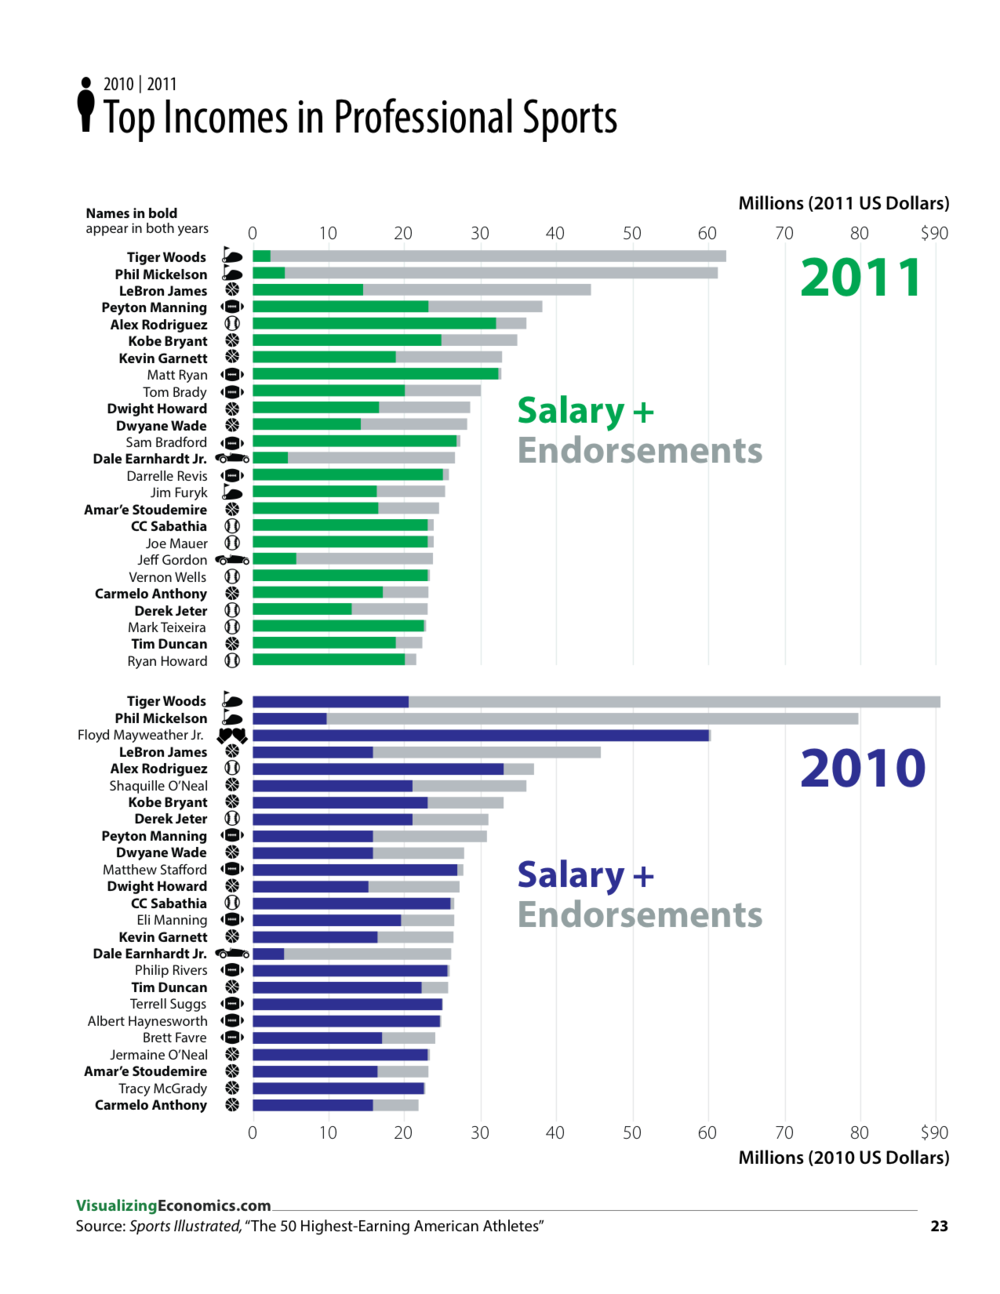 IncomeGuide_2013_Jan17_RGB_page 23_23.png